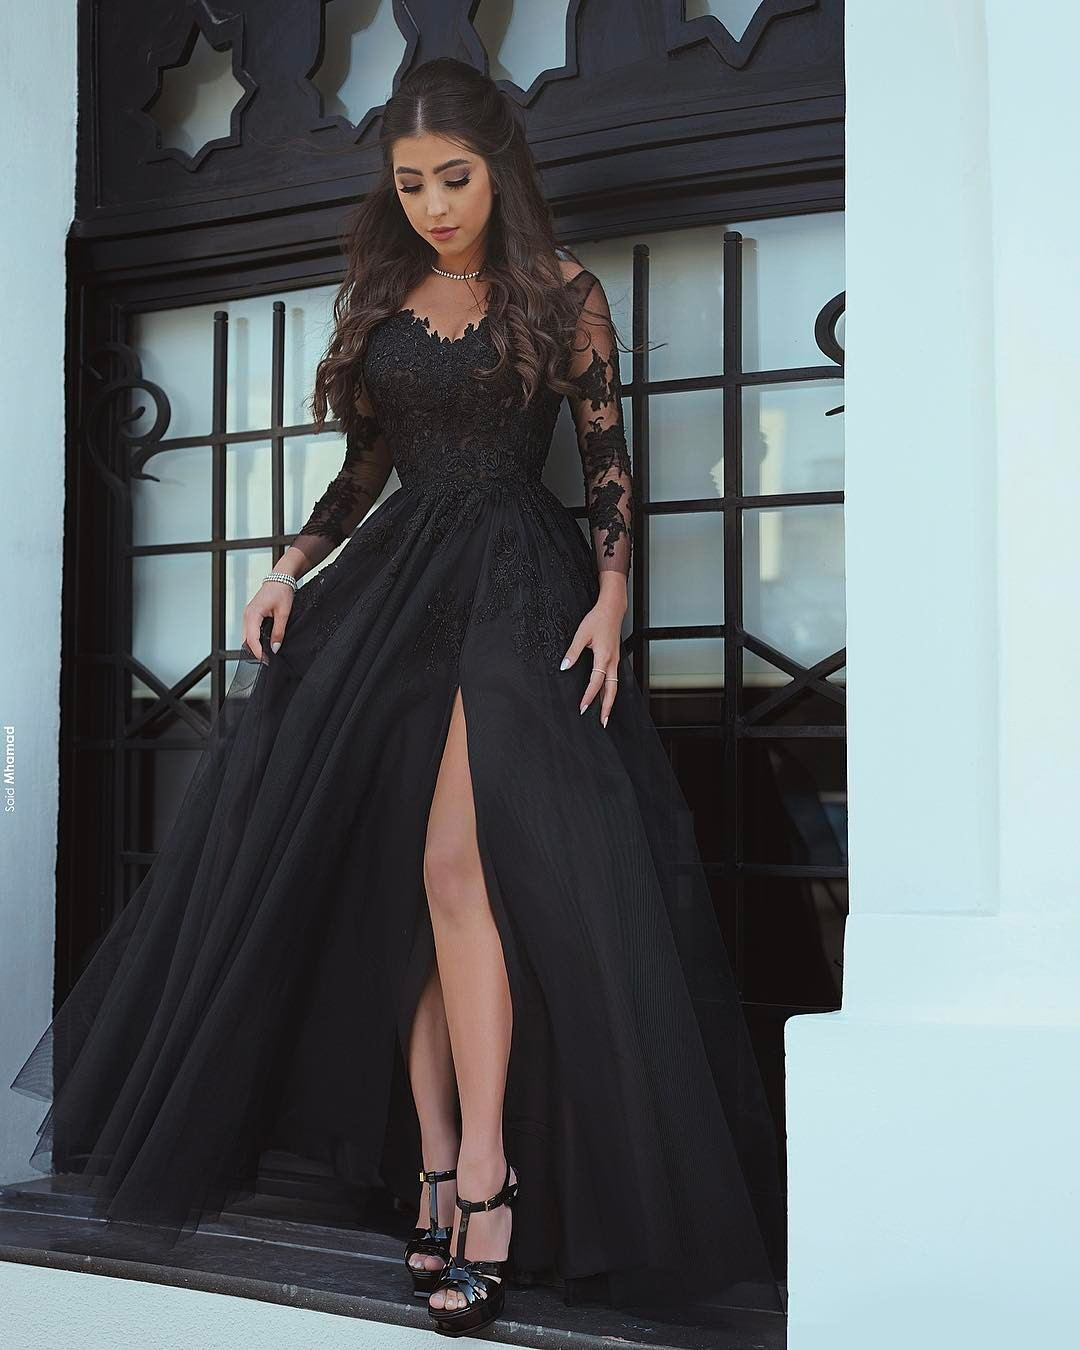 d5a7aff8811e Sexy Black Prom Dresses Long Sleeves Side Slit Puffy Evening Gowns ...